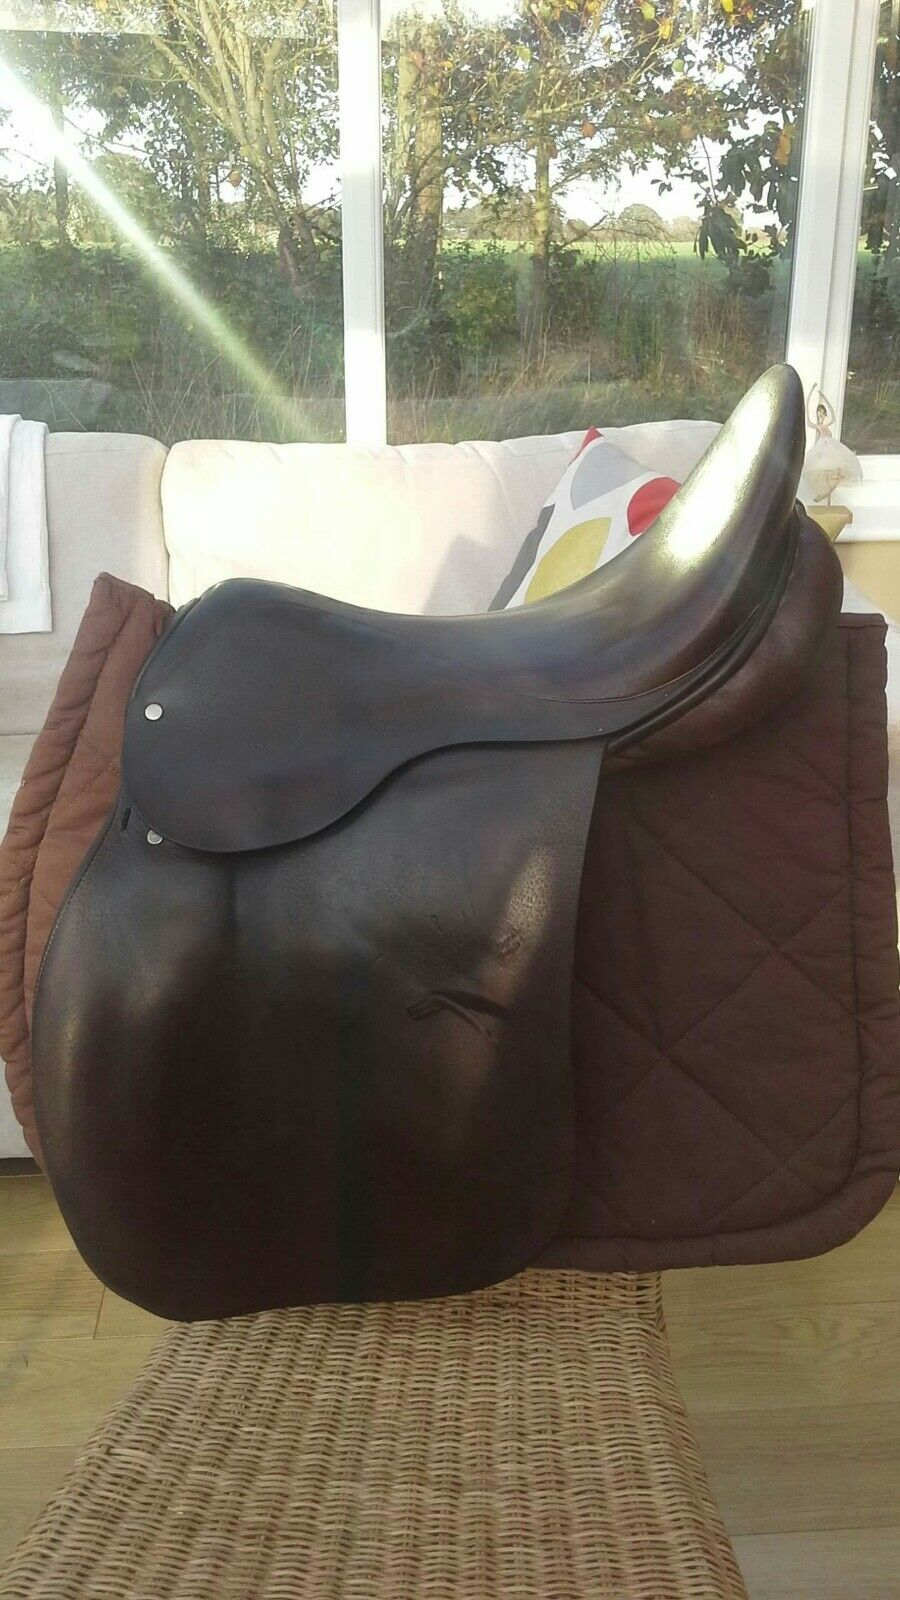 Brown Ideal GP Saddle 18 Inch - NOW REDUCED FURTHER